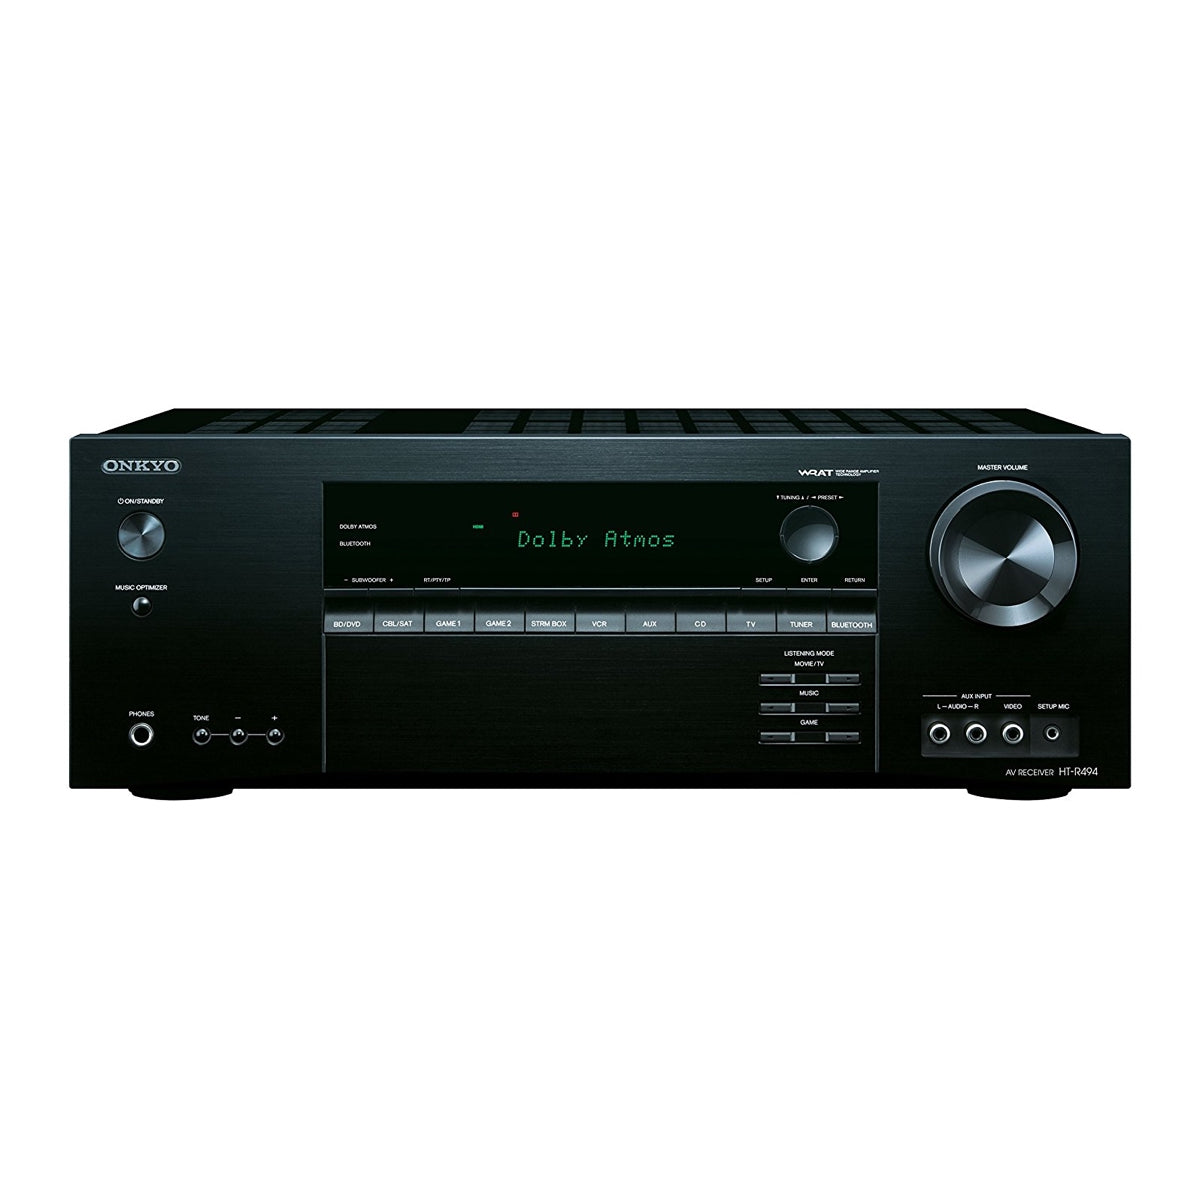 Onkyo HTS-5805 - 5.1 Channel Atmos-Enabled Home Theatre System, Onkyo, Home Theatre in a box - AVStore.in